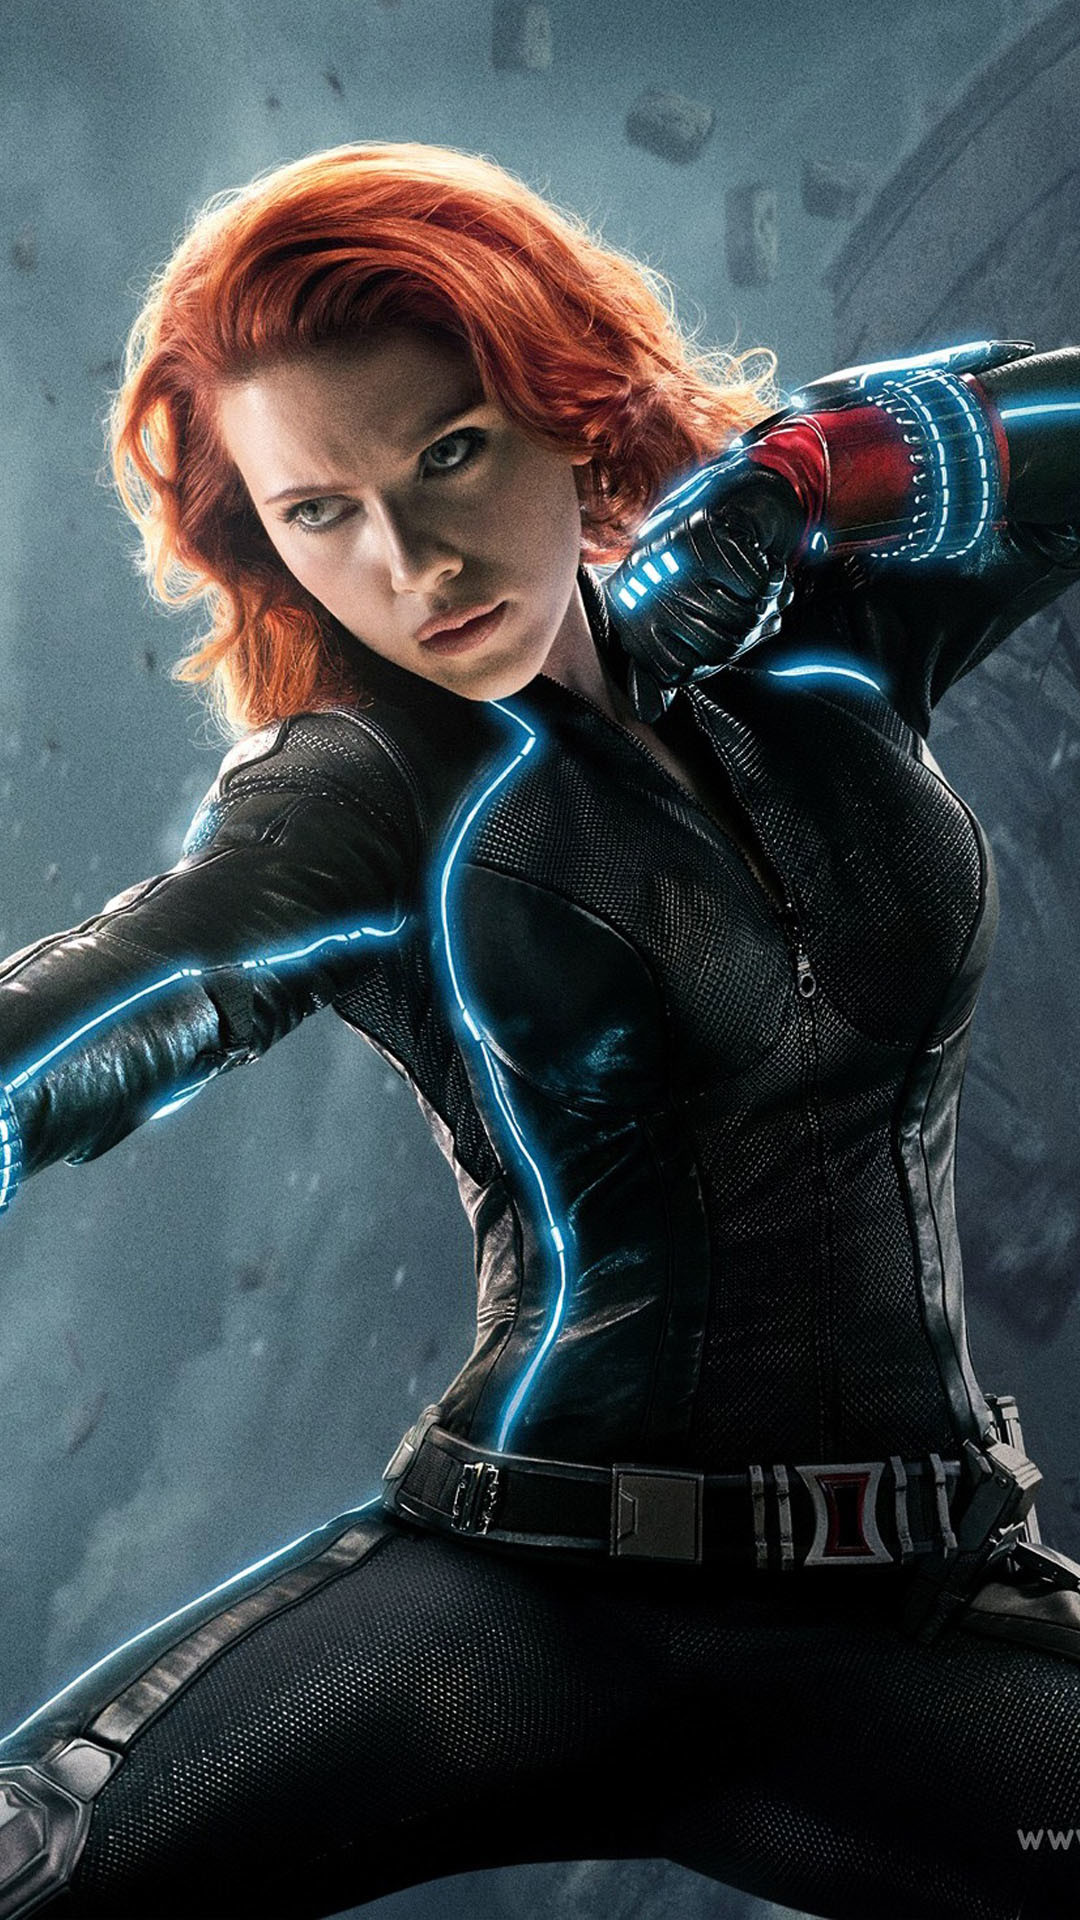 Avengers Age of Ultron Black Widow iPhone 6 / 6 Plus and iPhone Wallpapers